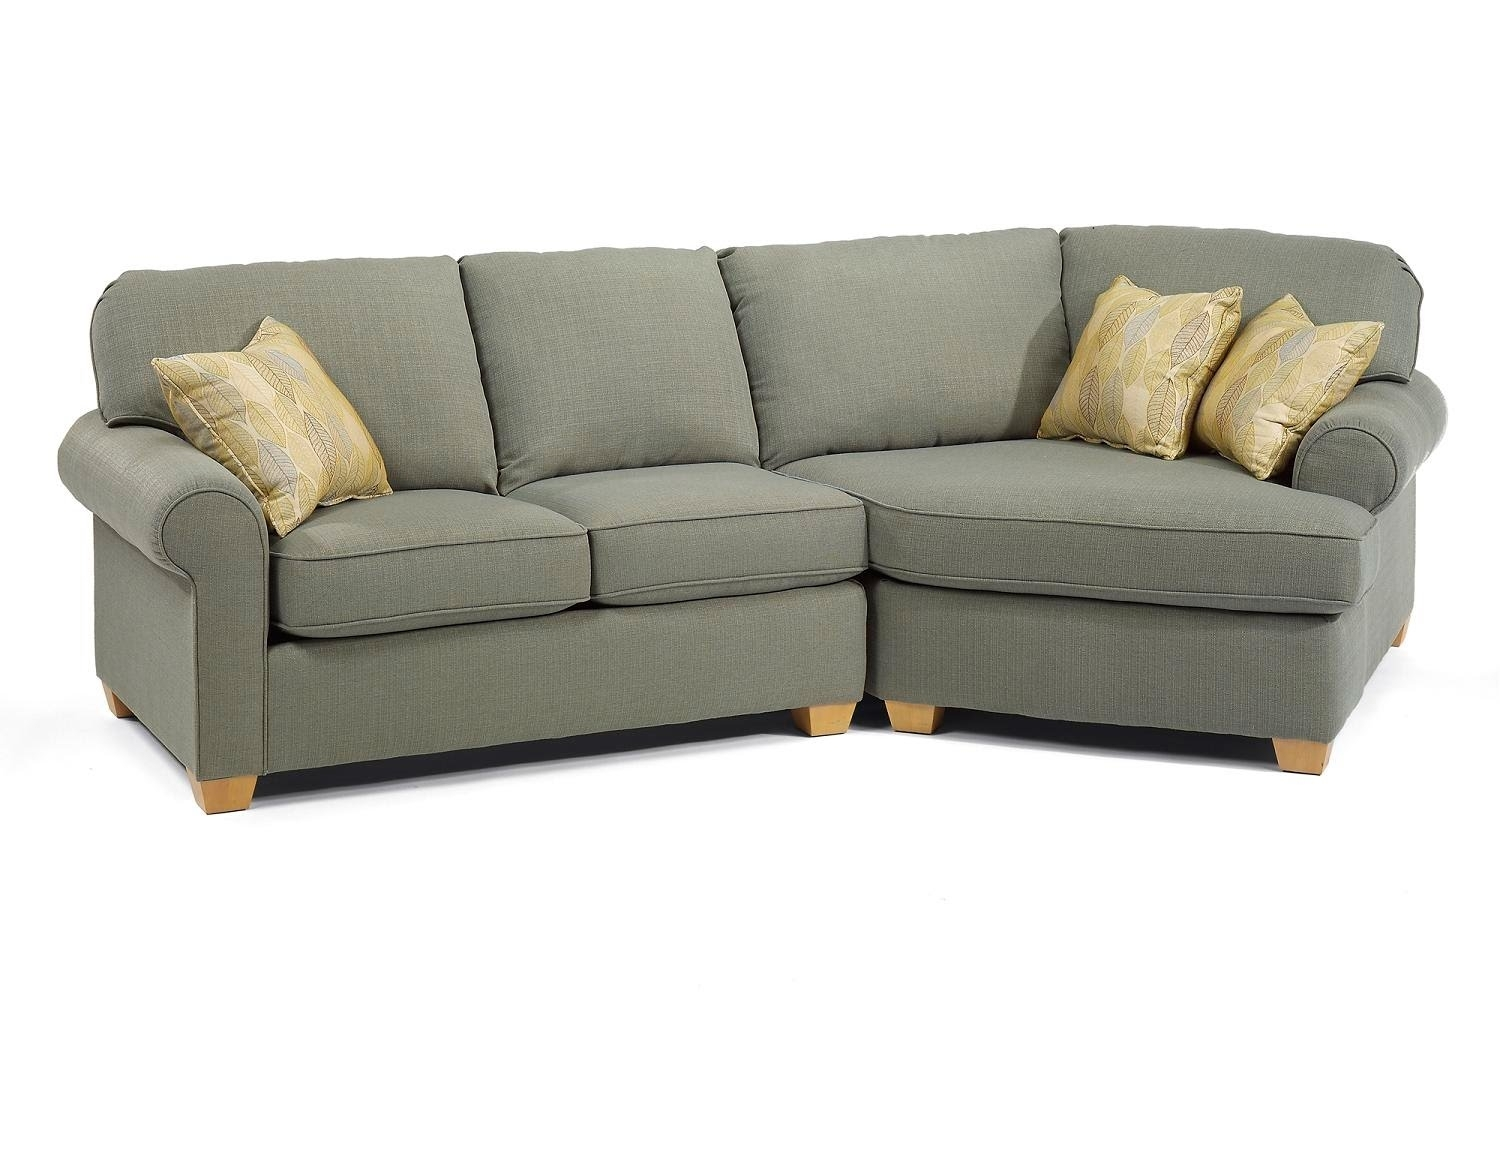 Small Sectional Sofa | Small Sectional Sofa Basement – Youtube Regarding Small Sectional Sofas (View 10 of 10)